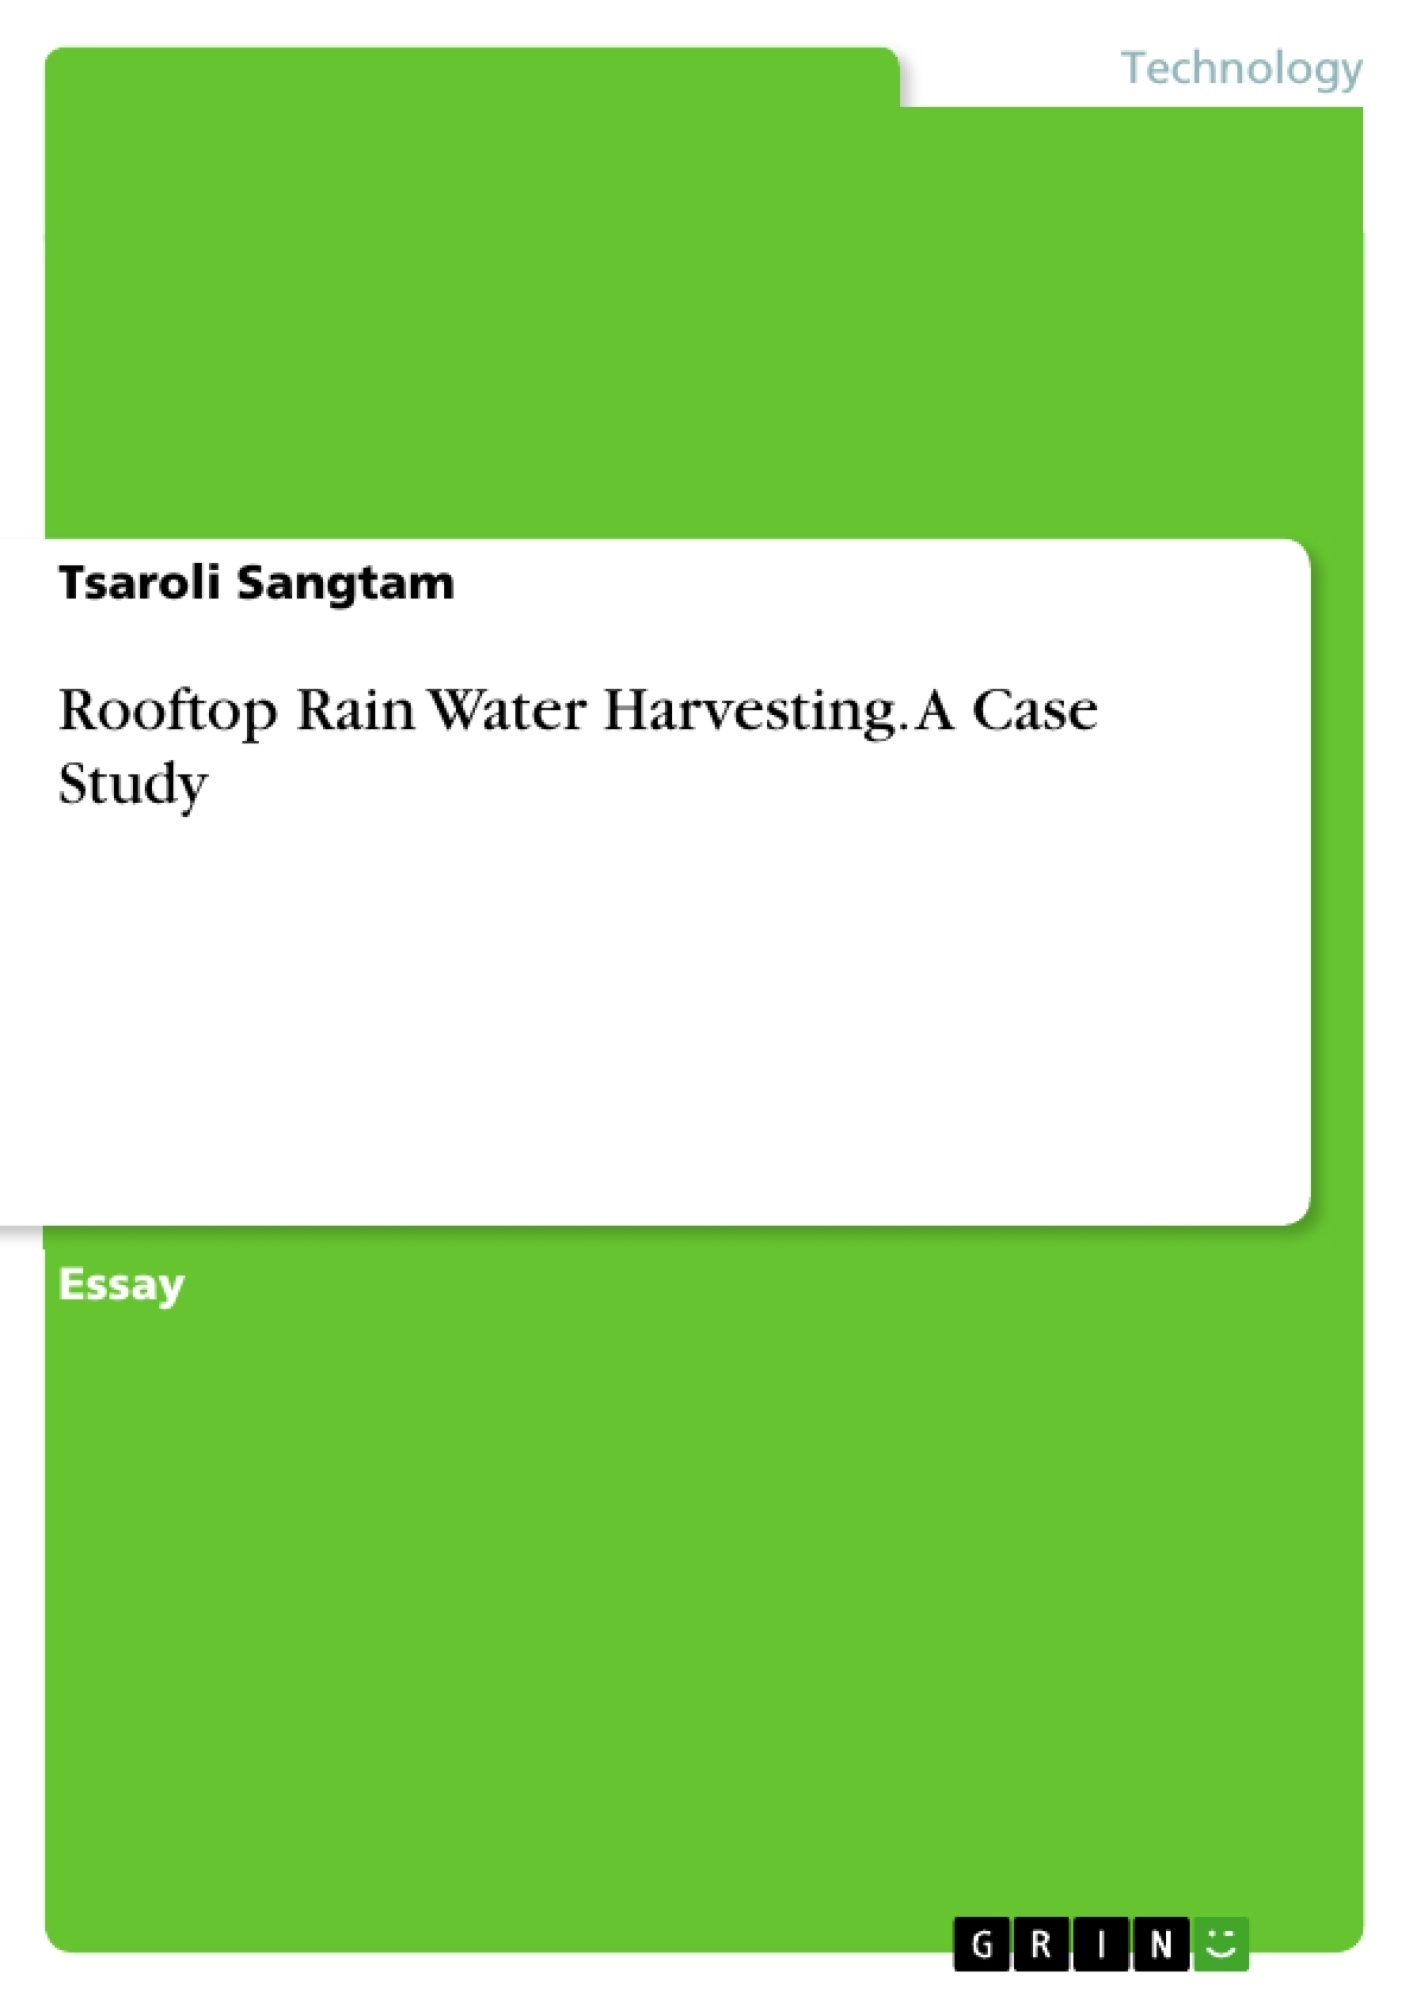 Title: Rooftop Rain Water Harvesting. A Case Study